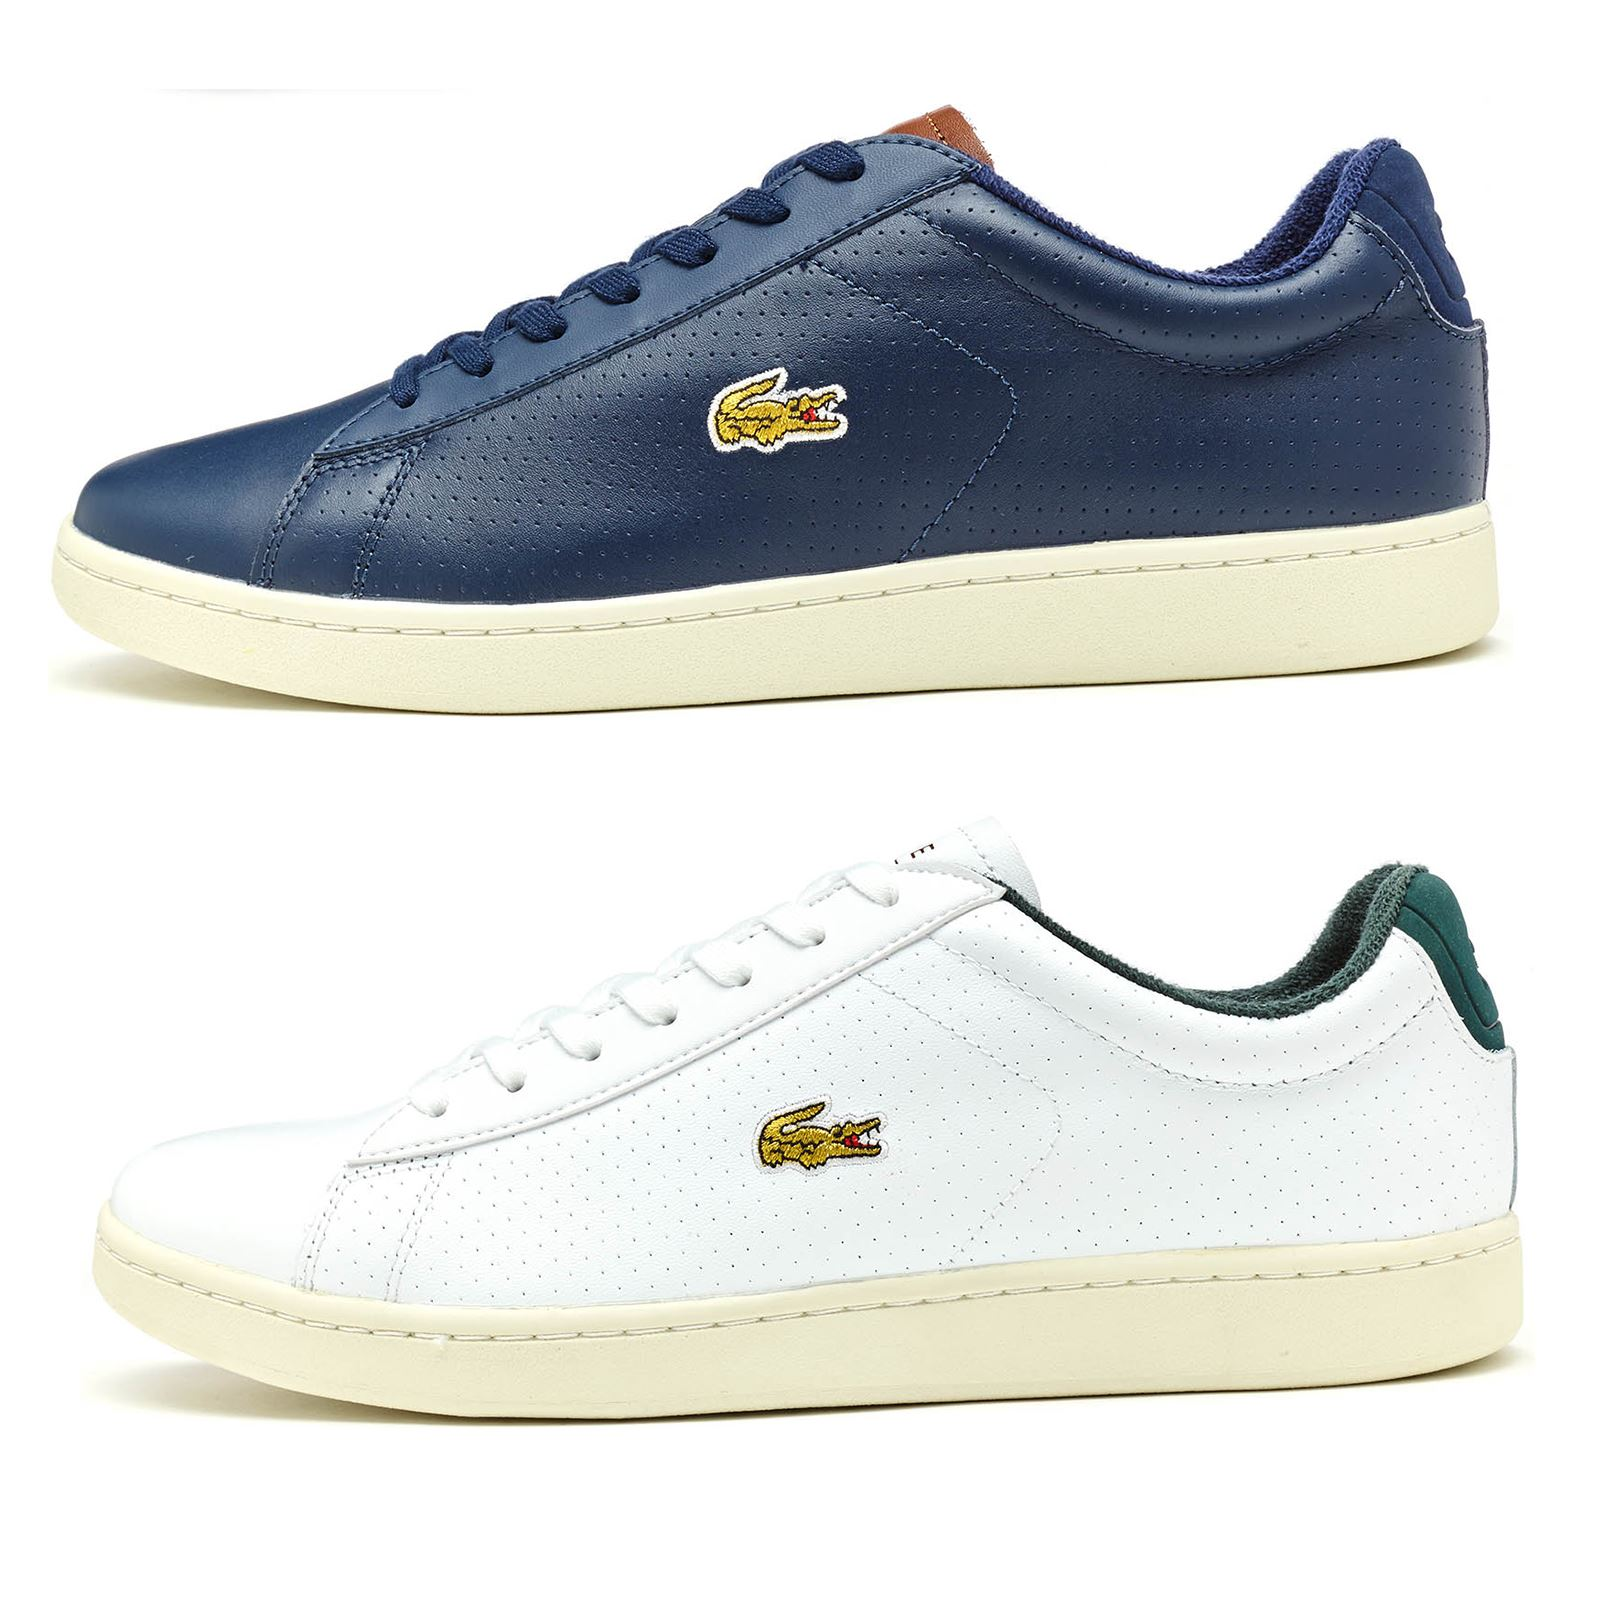 ef0d4d156591a Details about Lacoste Carnaby EVO 317 SPM Leather Trainers in White   Blue